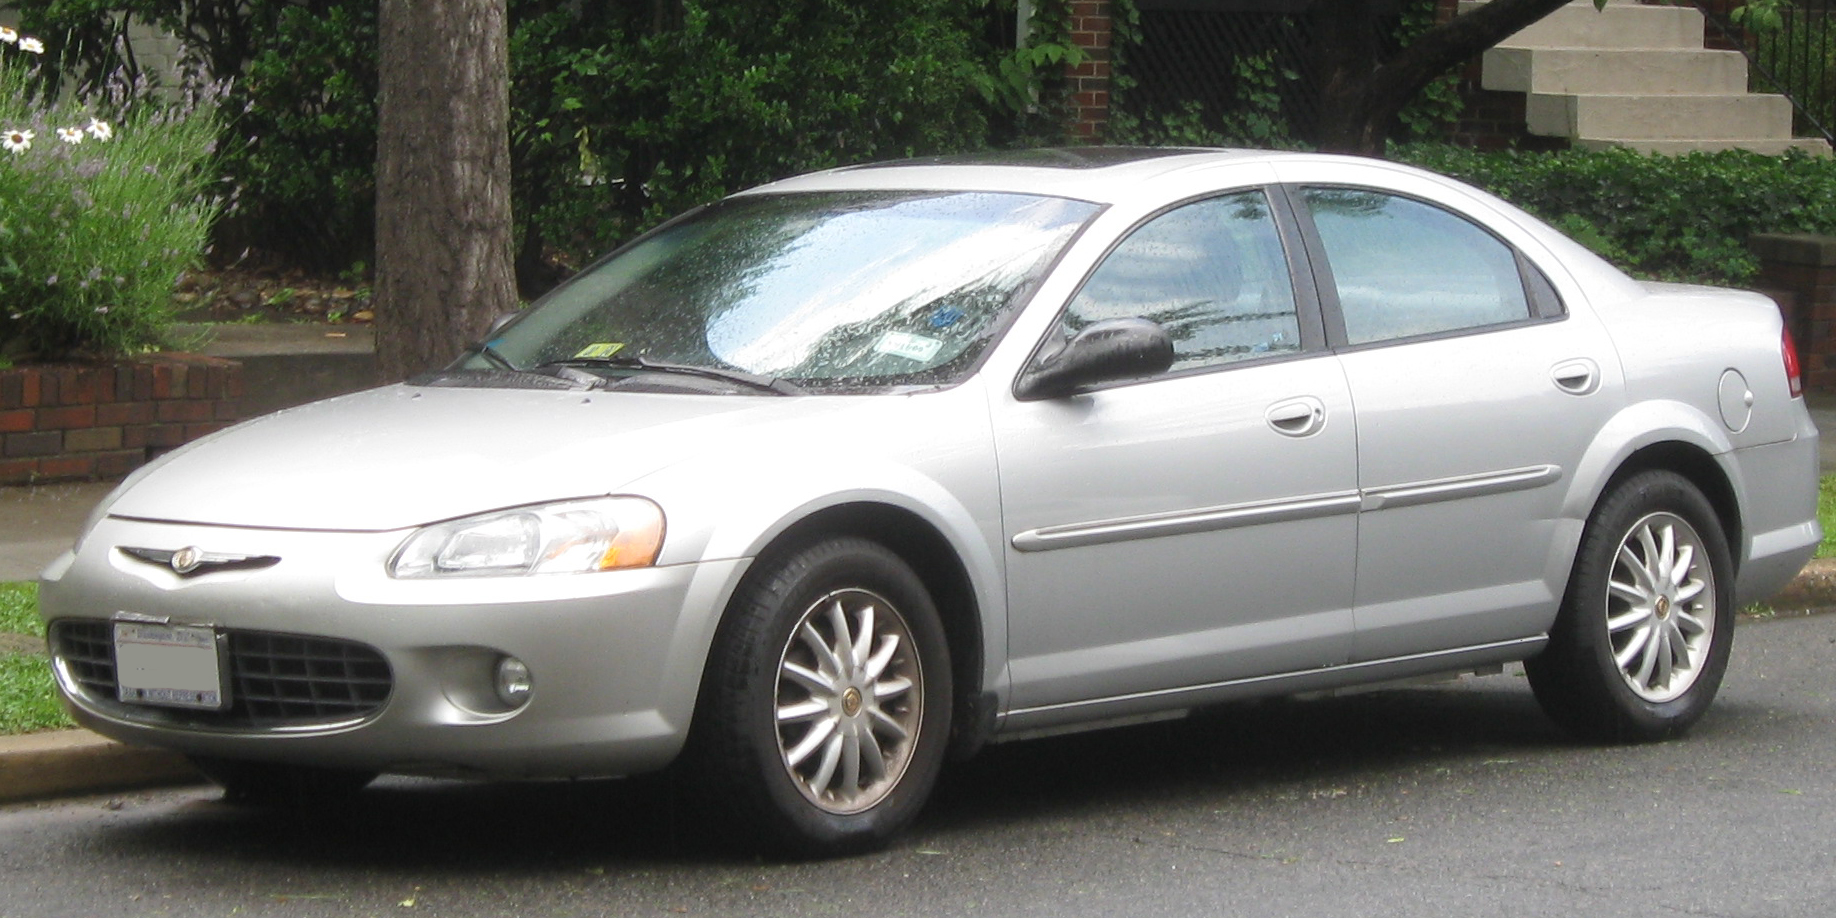 Chrysler sebring photo - 2